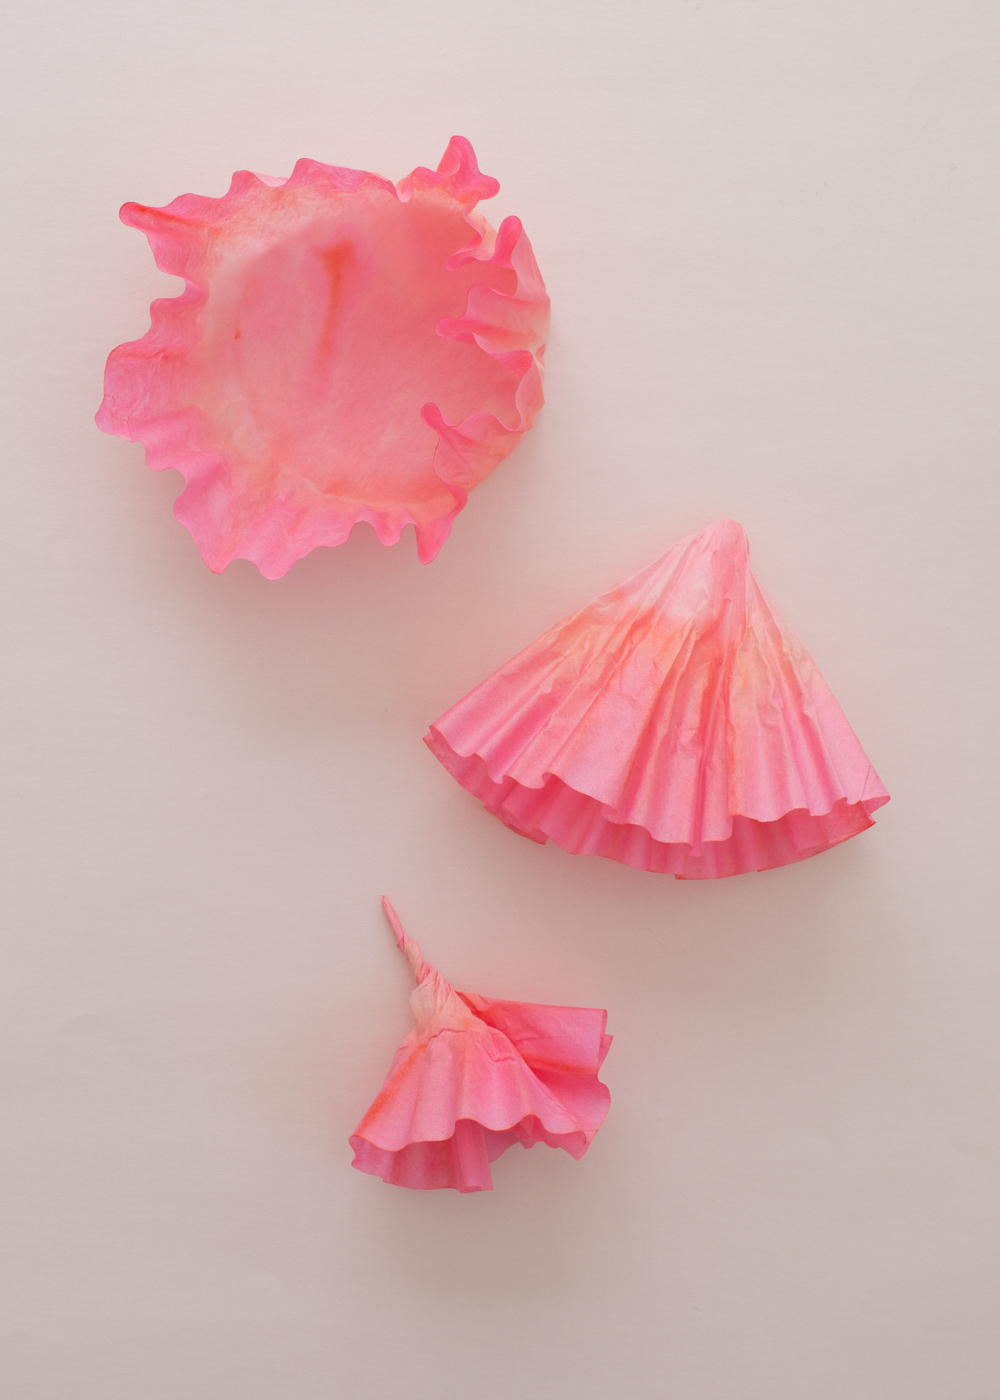 Paper-Goods-Projects-Flower